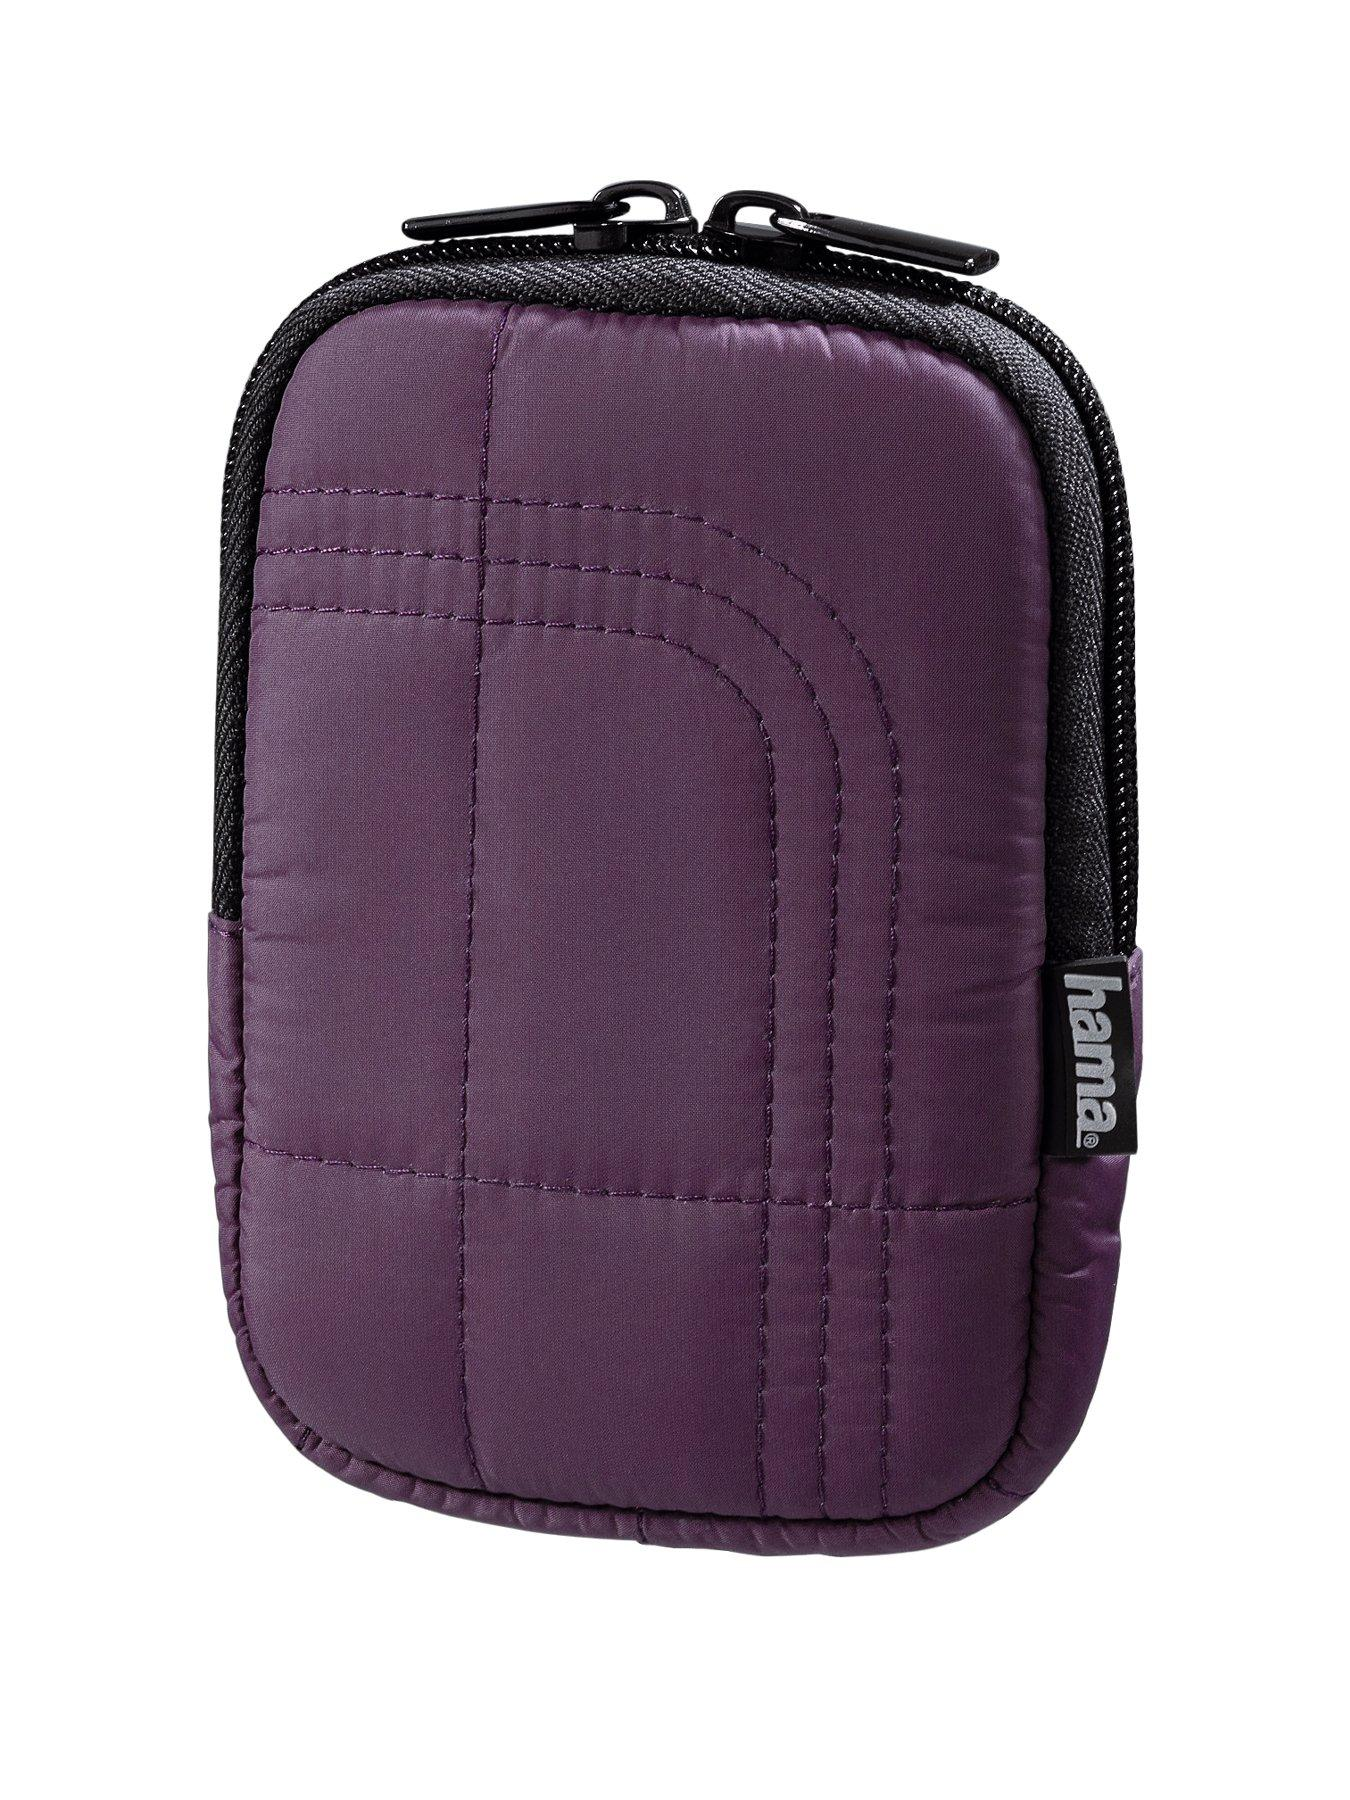 Fancy Memory 50C Camera Bag Purple at Littlewoods